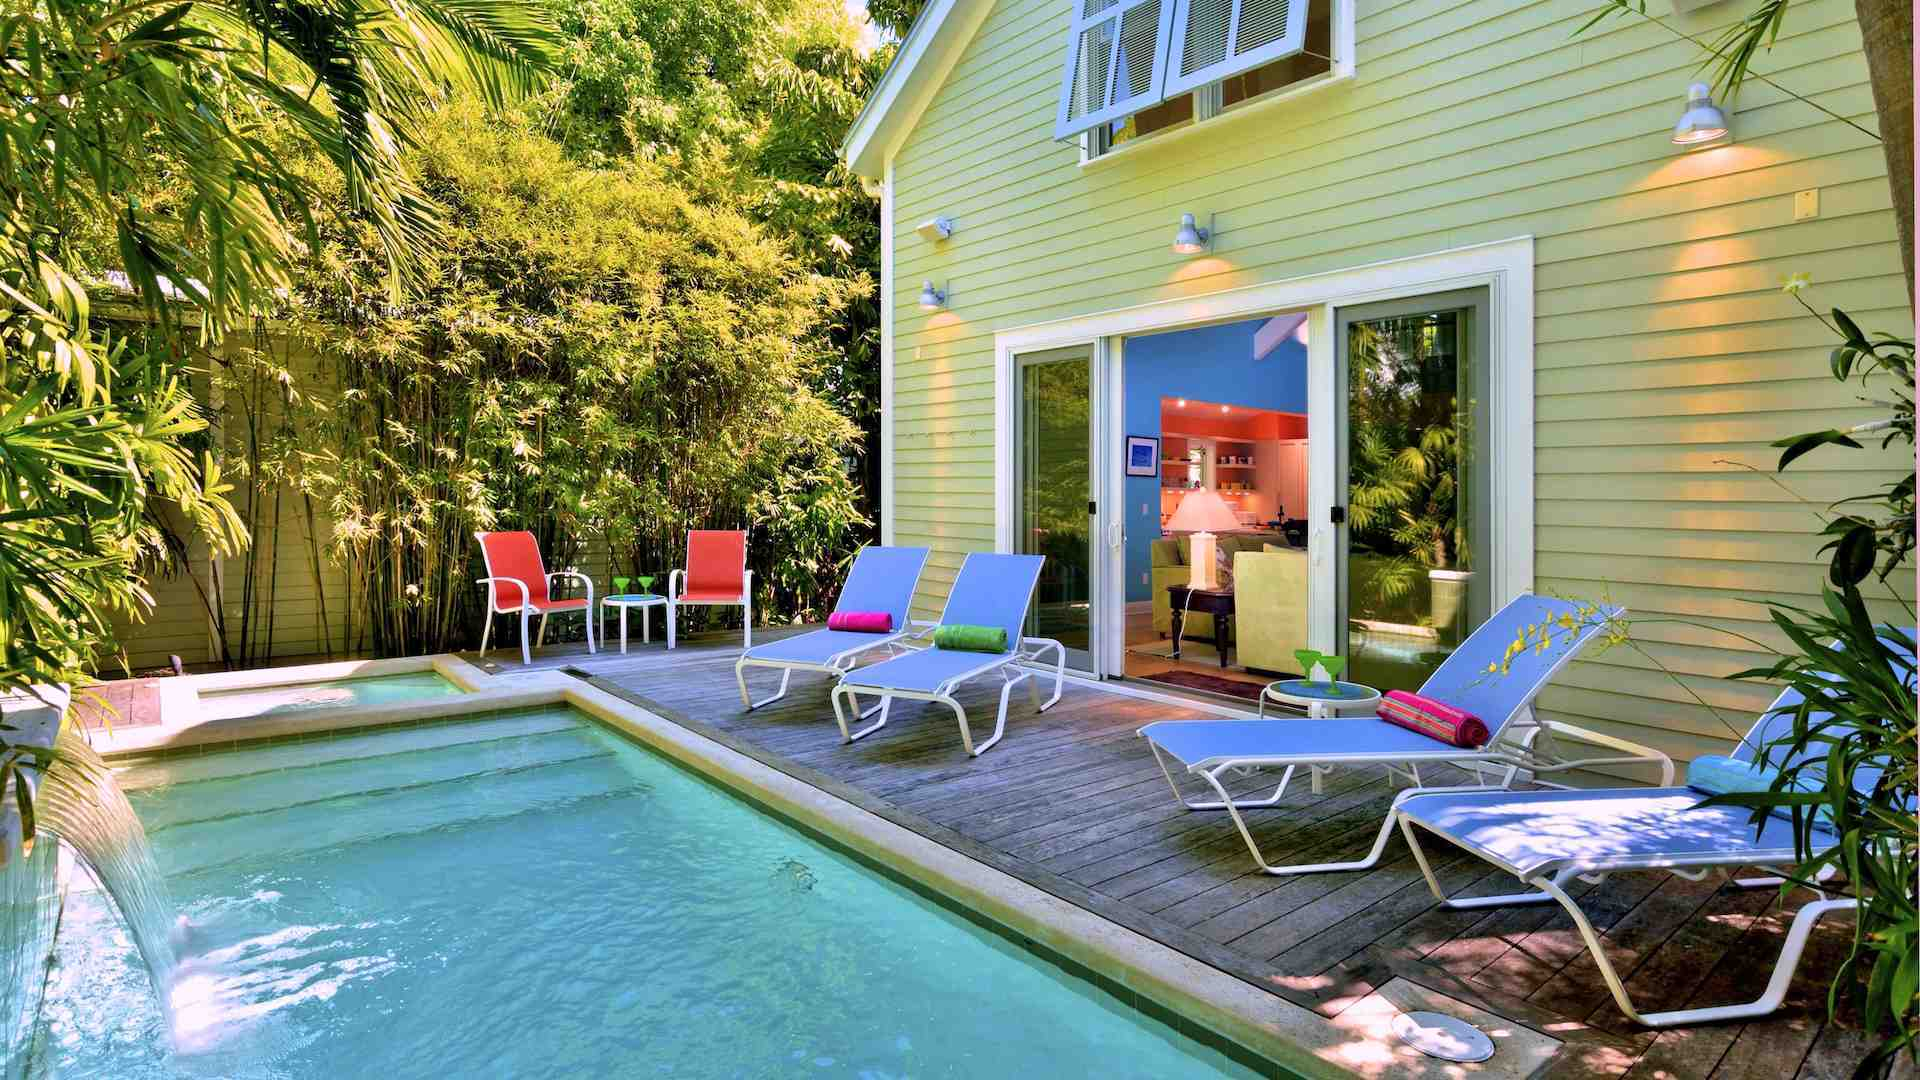 The pool deck out back has chaise lounges and seating for up to six persons...